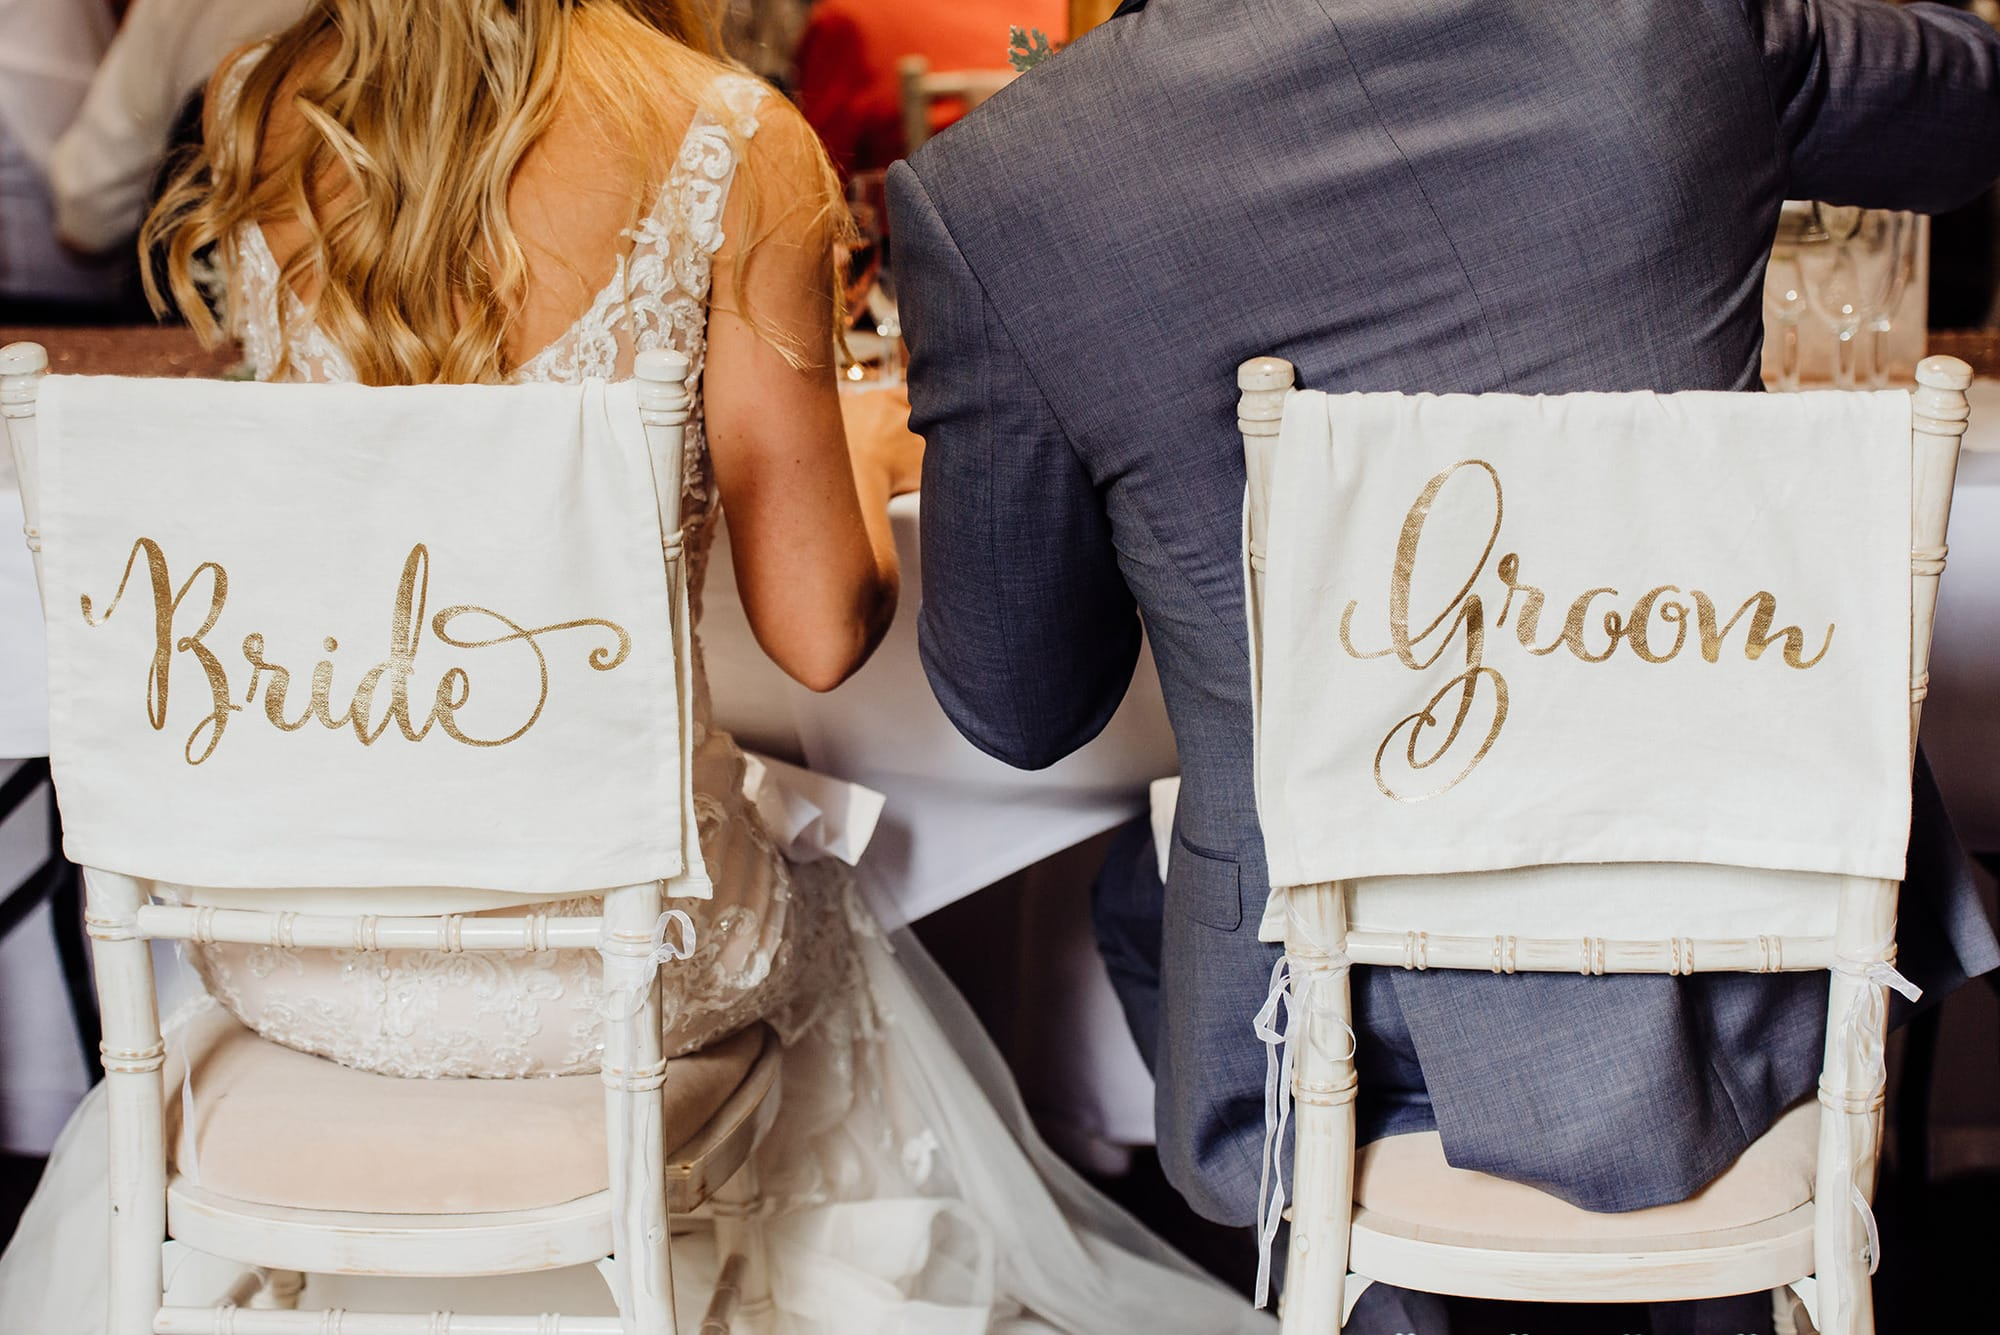 Bride and groom written on the back of chair covers